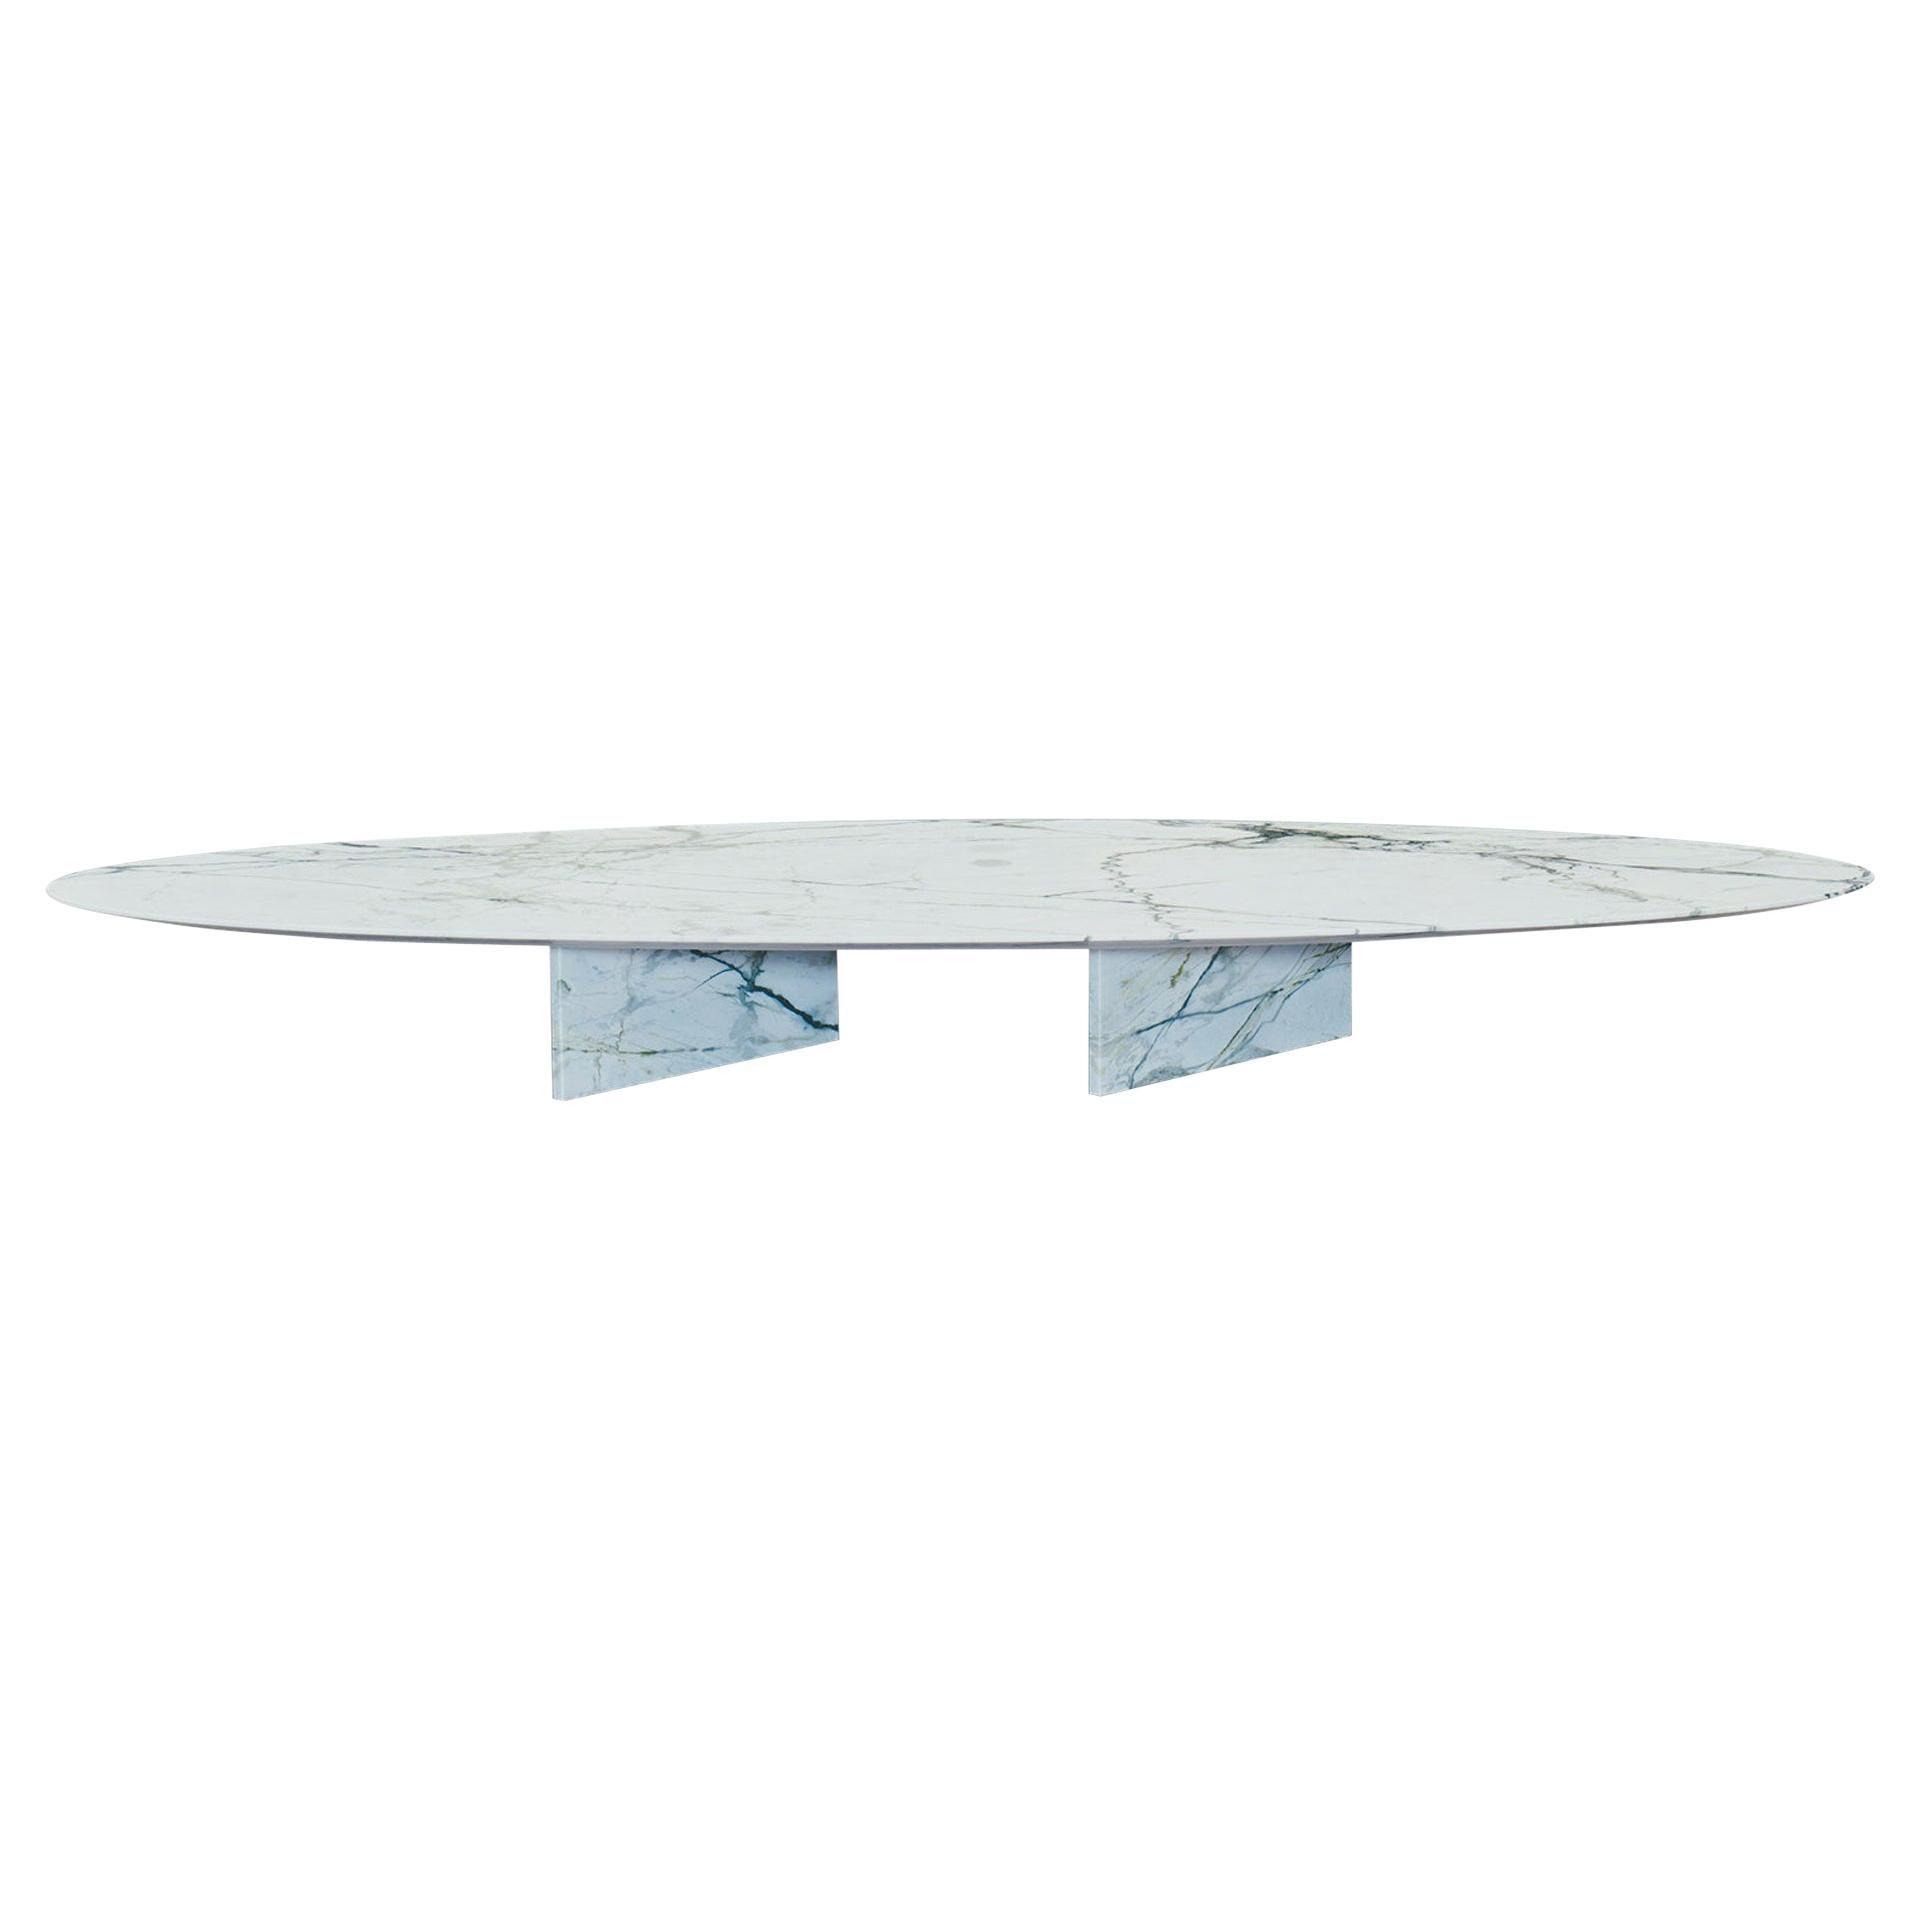 Contemporary Marble Coffee Table, Ellipse 01.4 c by barh